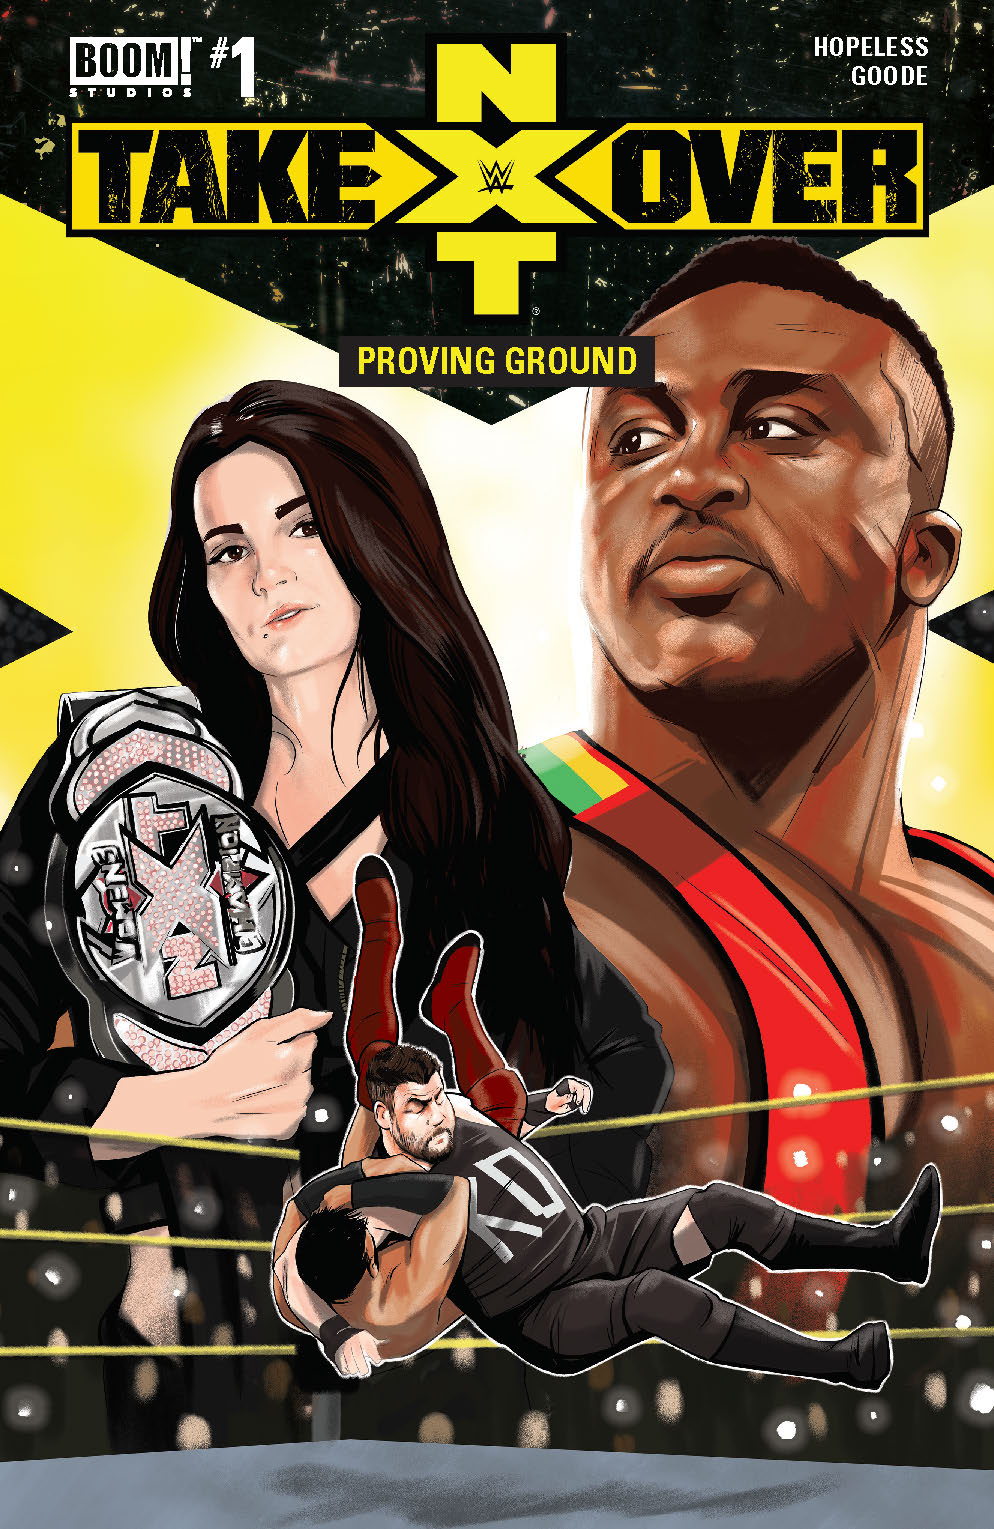 WWE NXT TAKEOVER PROVING GROUND #1 MAIN